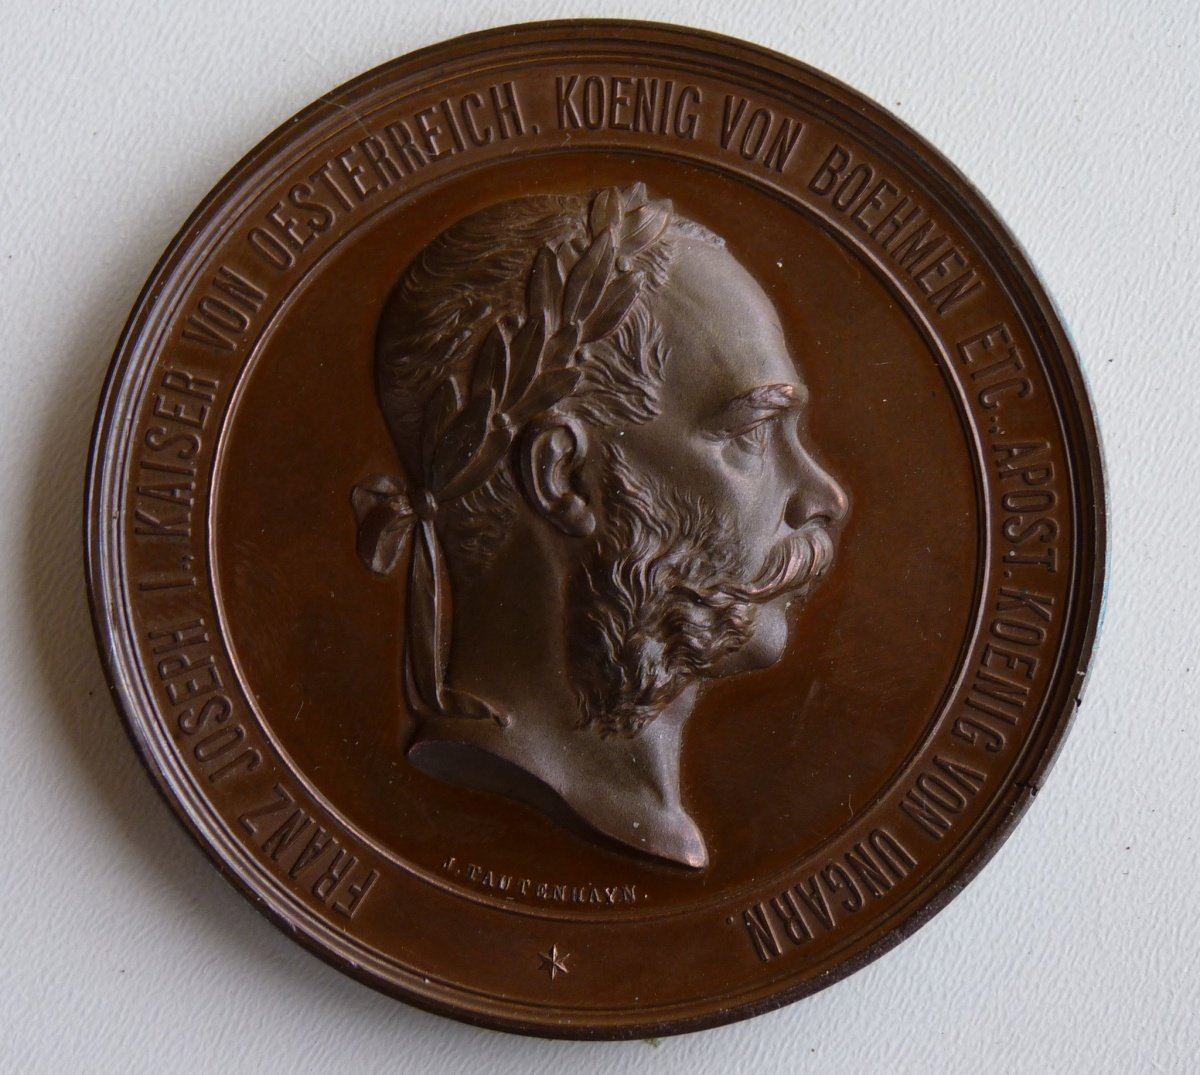 Medal of Franz Joseph, exhibition in Vienna in 1873 on cooperation topic